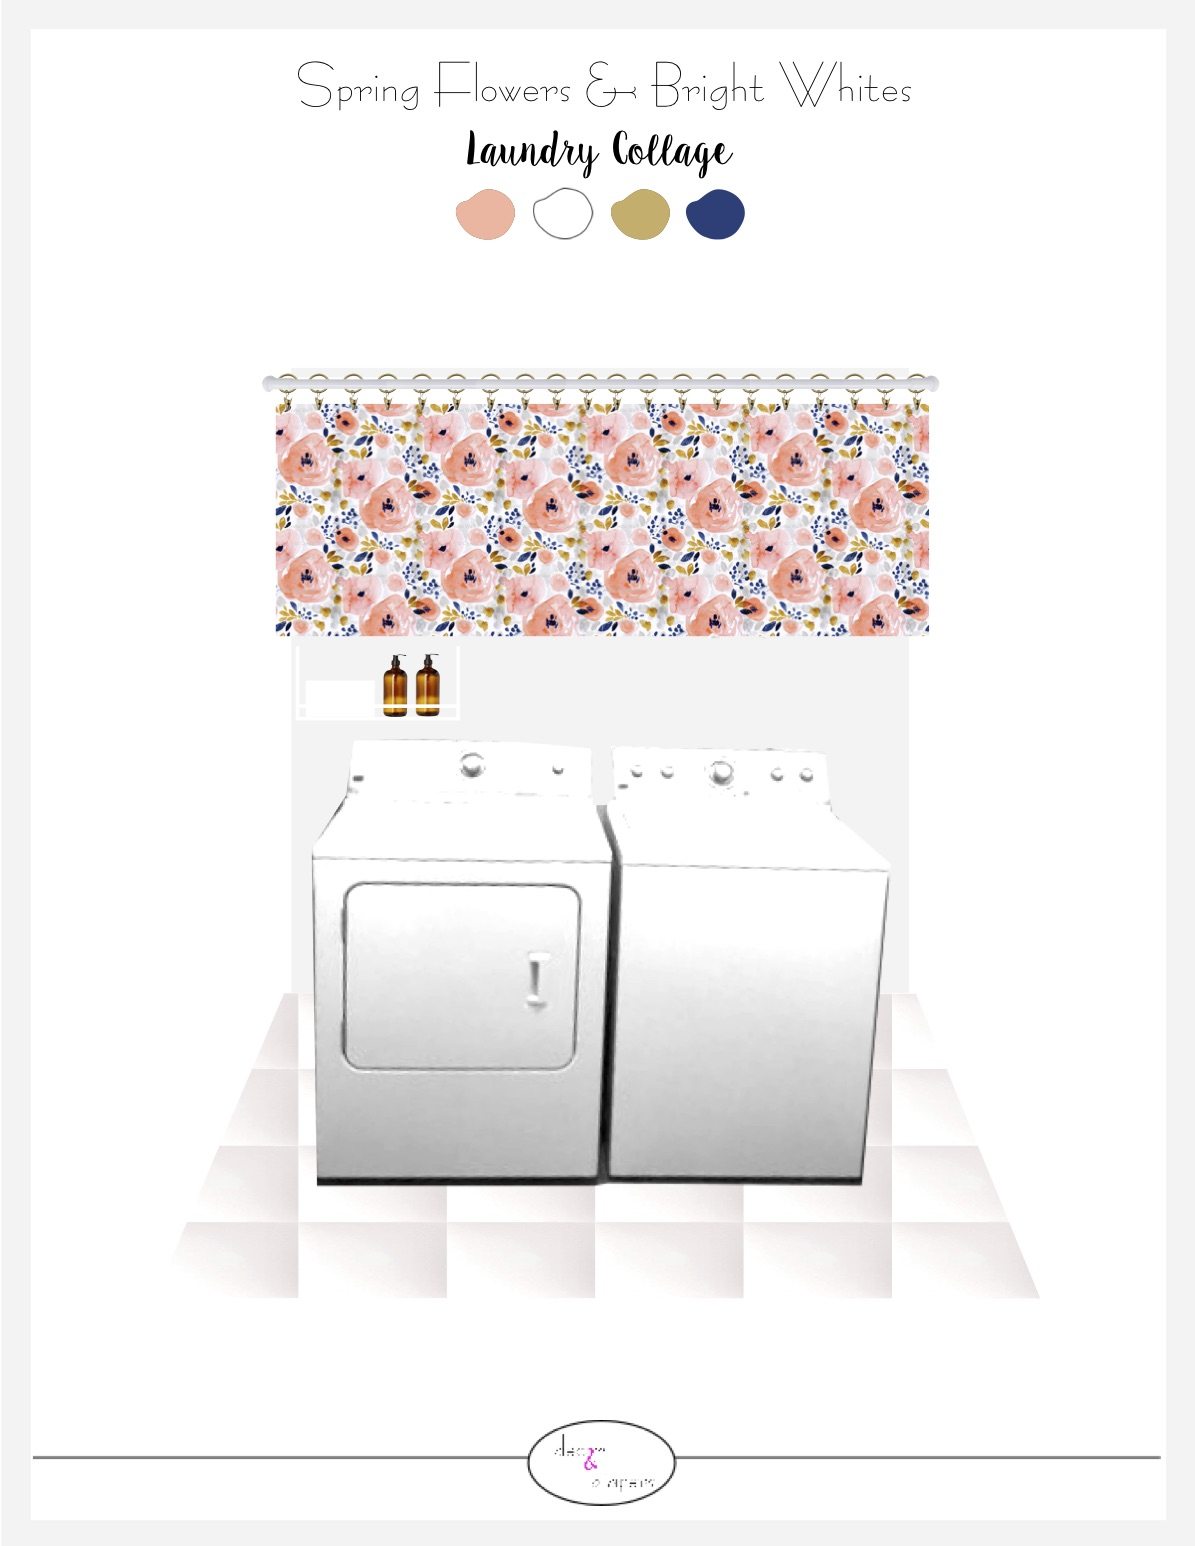 20190404 floral laundry room-collage.jpg